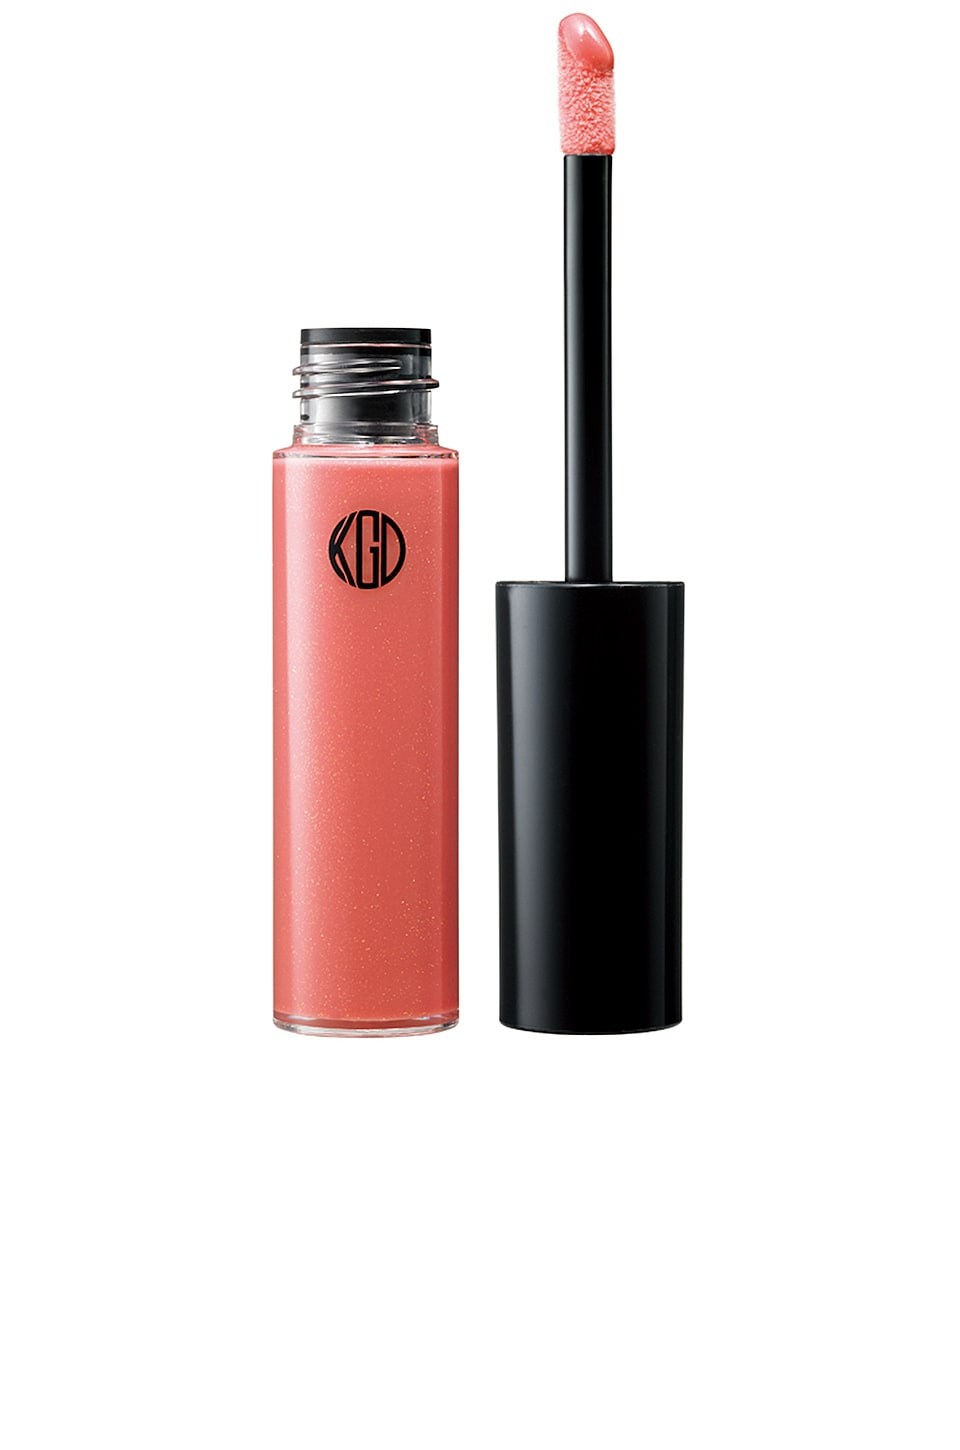 Koh Gen Do Maifanshi Lip Gloss in PK303